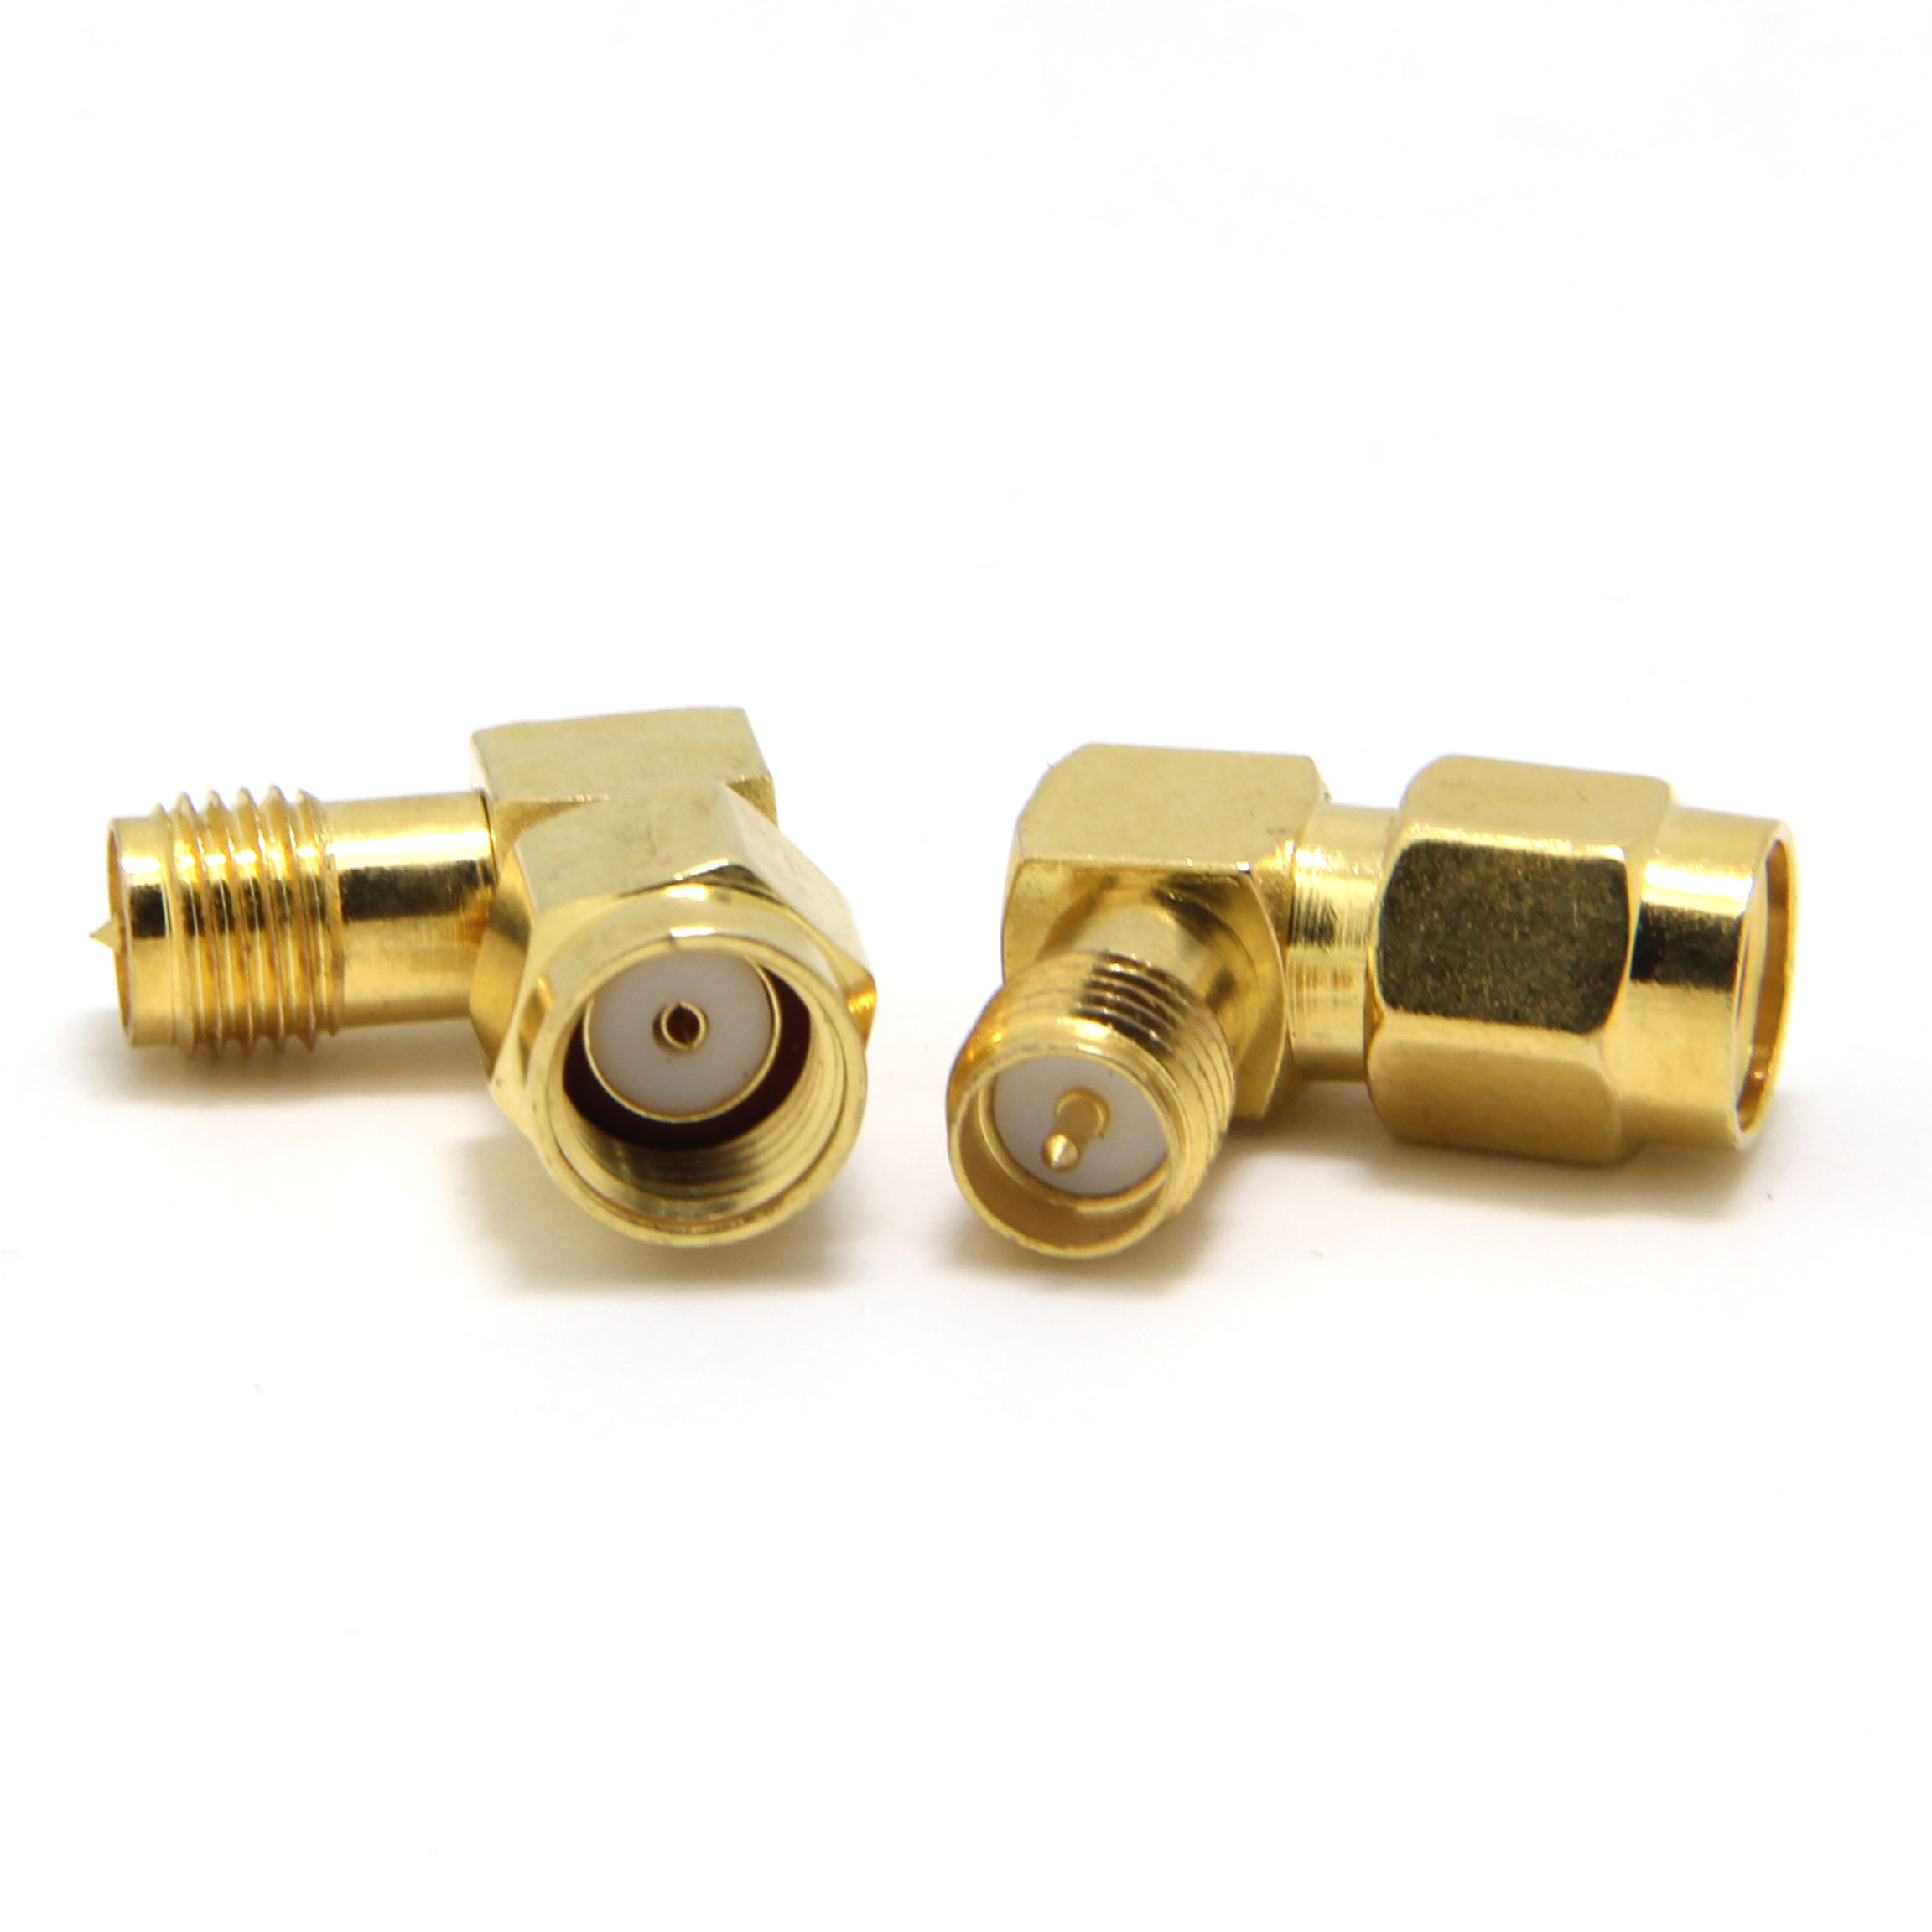 2-PACK Right Angle RP-SMA Reverse Polarity Female to SMA Male Gold Adapter